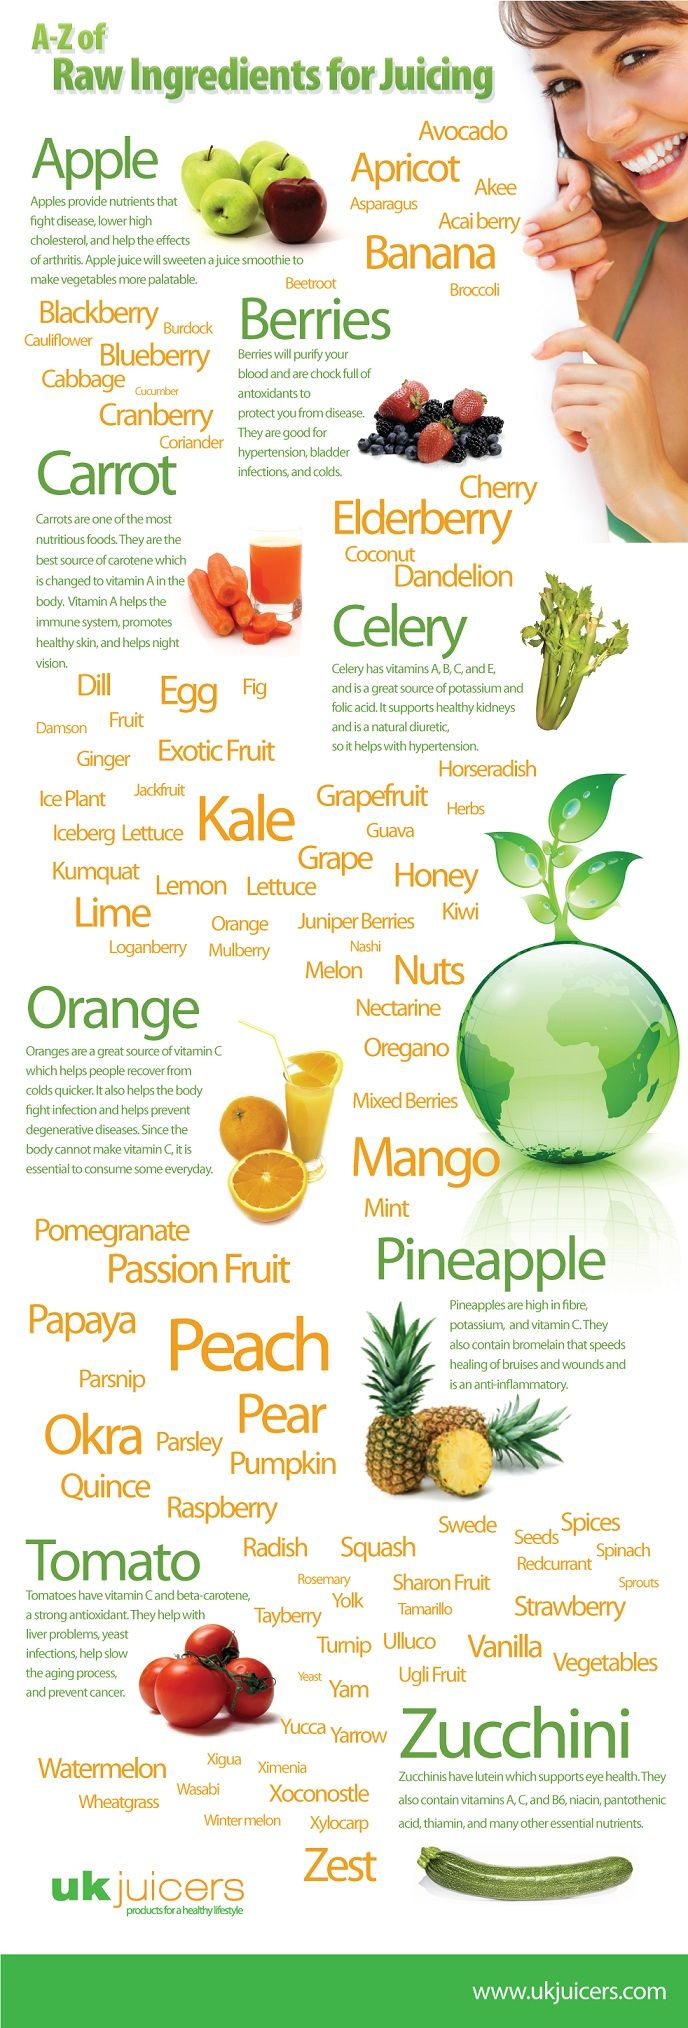 Raw Ingredients for Juicing